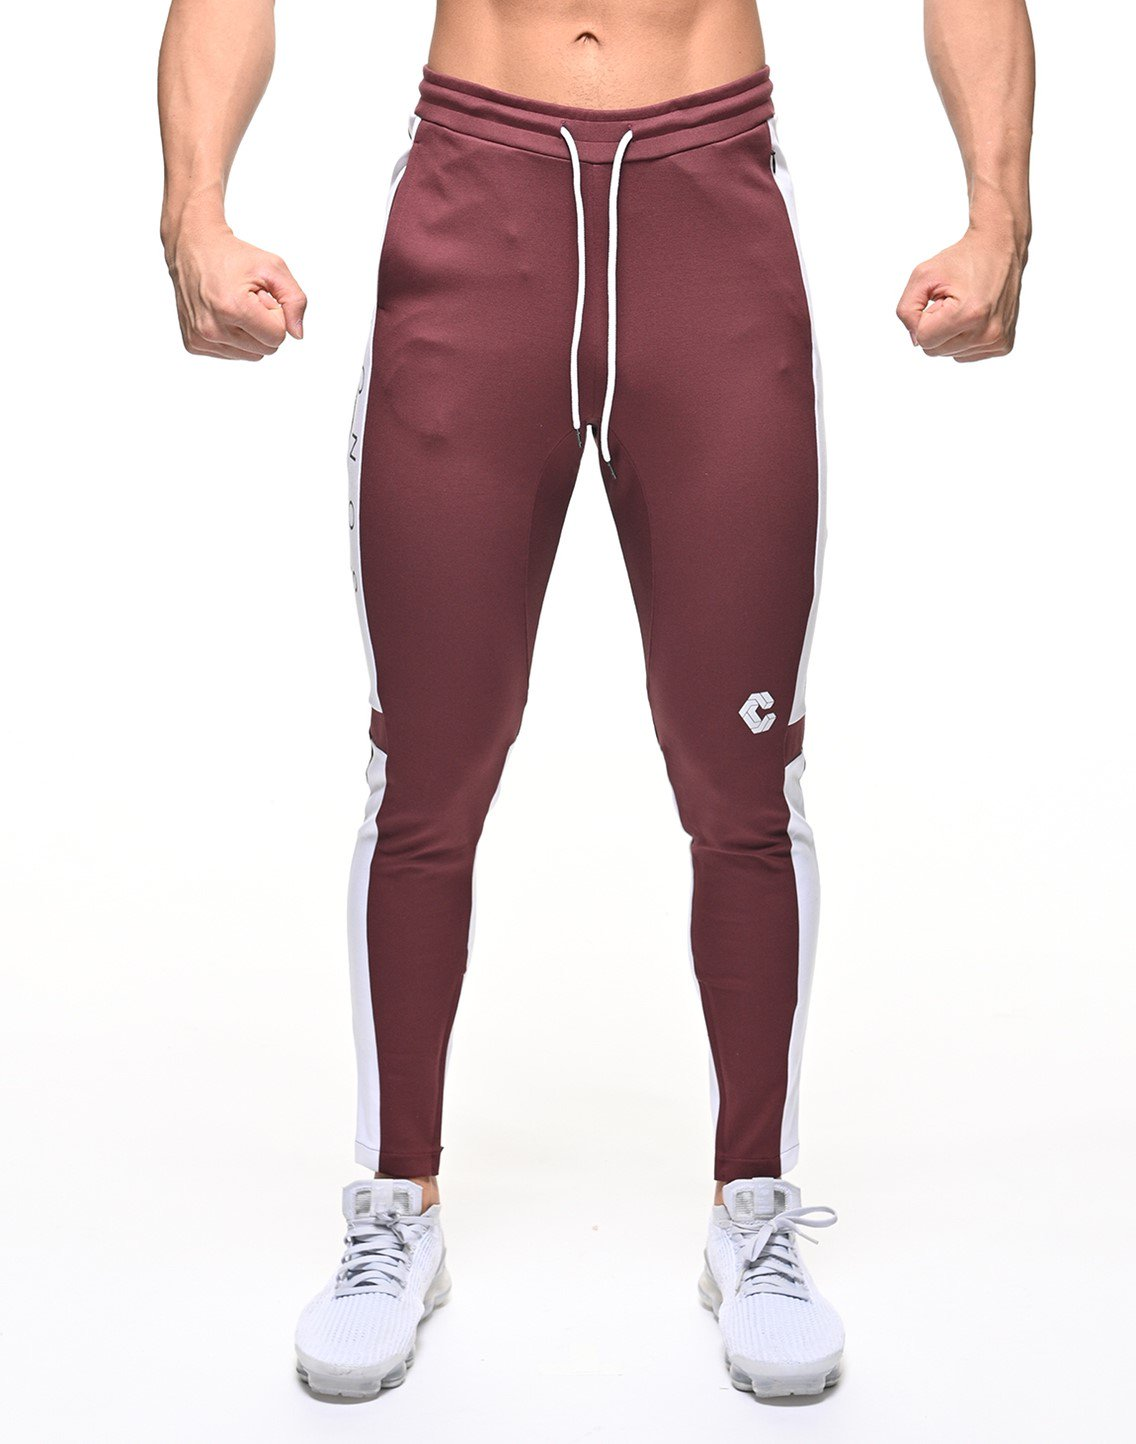 <img class='new_mark_img1' src='https://img.shop-pro.jp/img/new/icons1.gif' style='border:none;display:inline;margin:0px;padding:0px;width:auto;' />CRONOS NEW THICK LINE PANT 【BORDEAUX×WHITE】